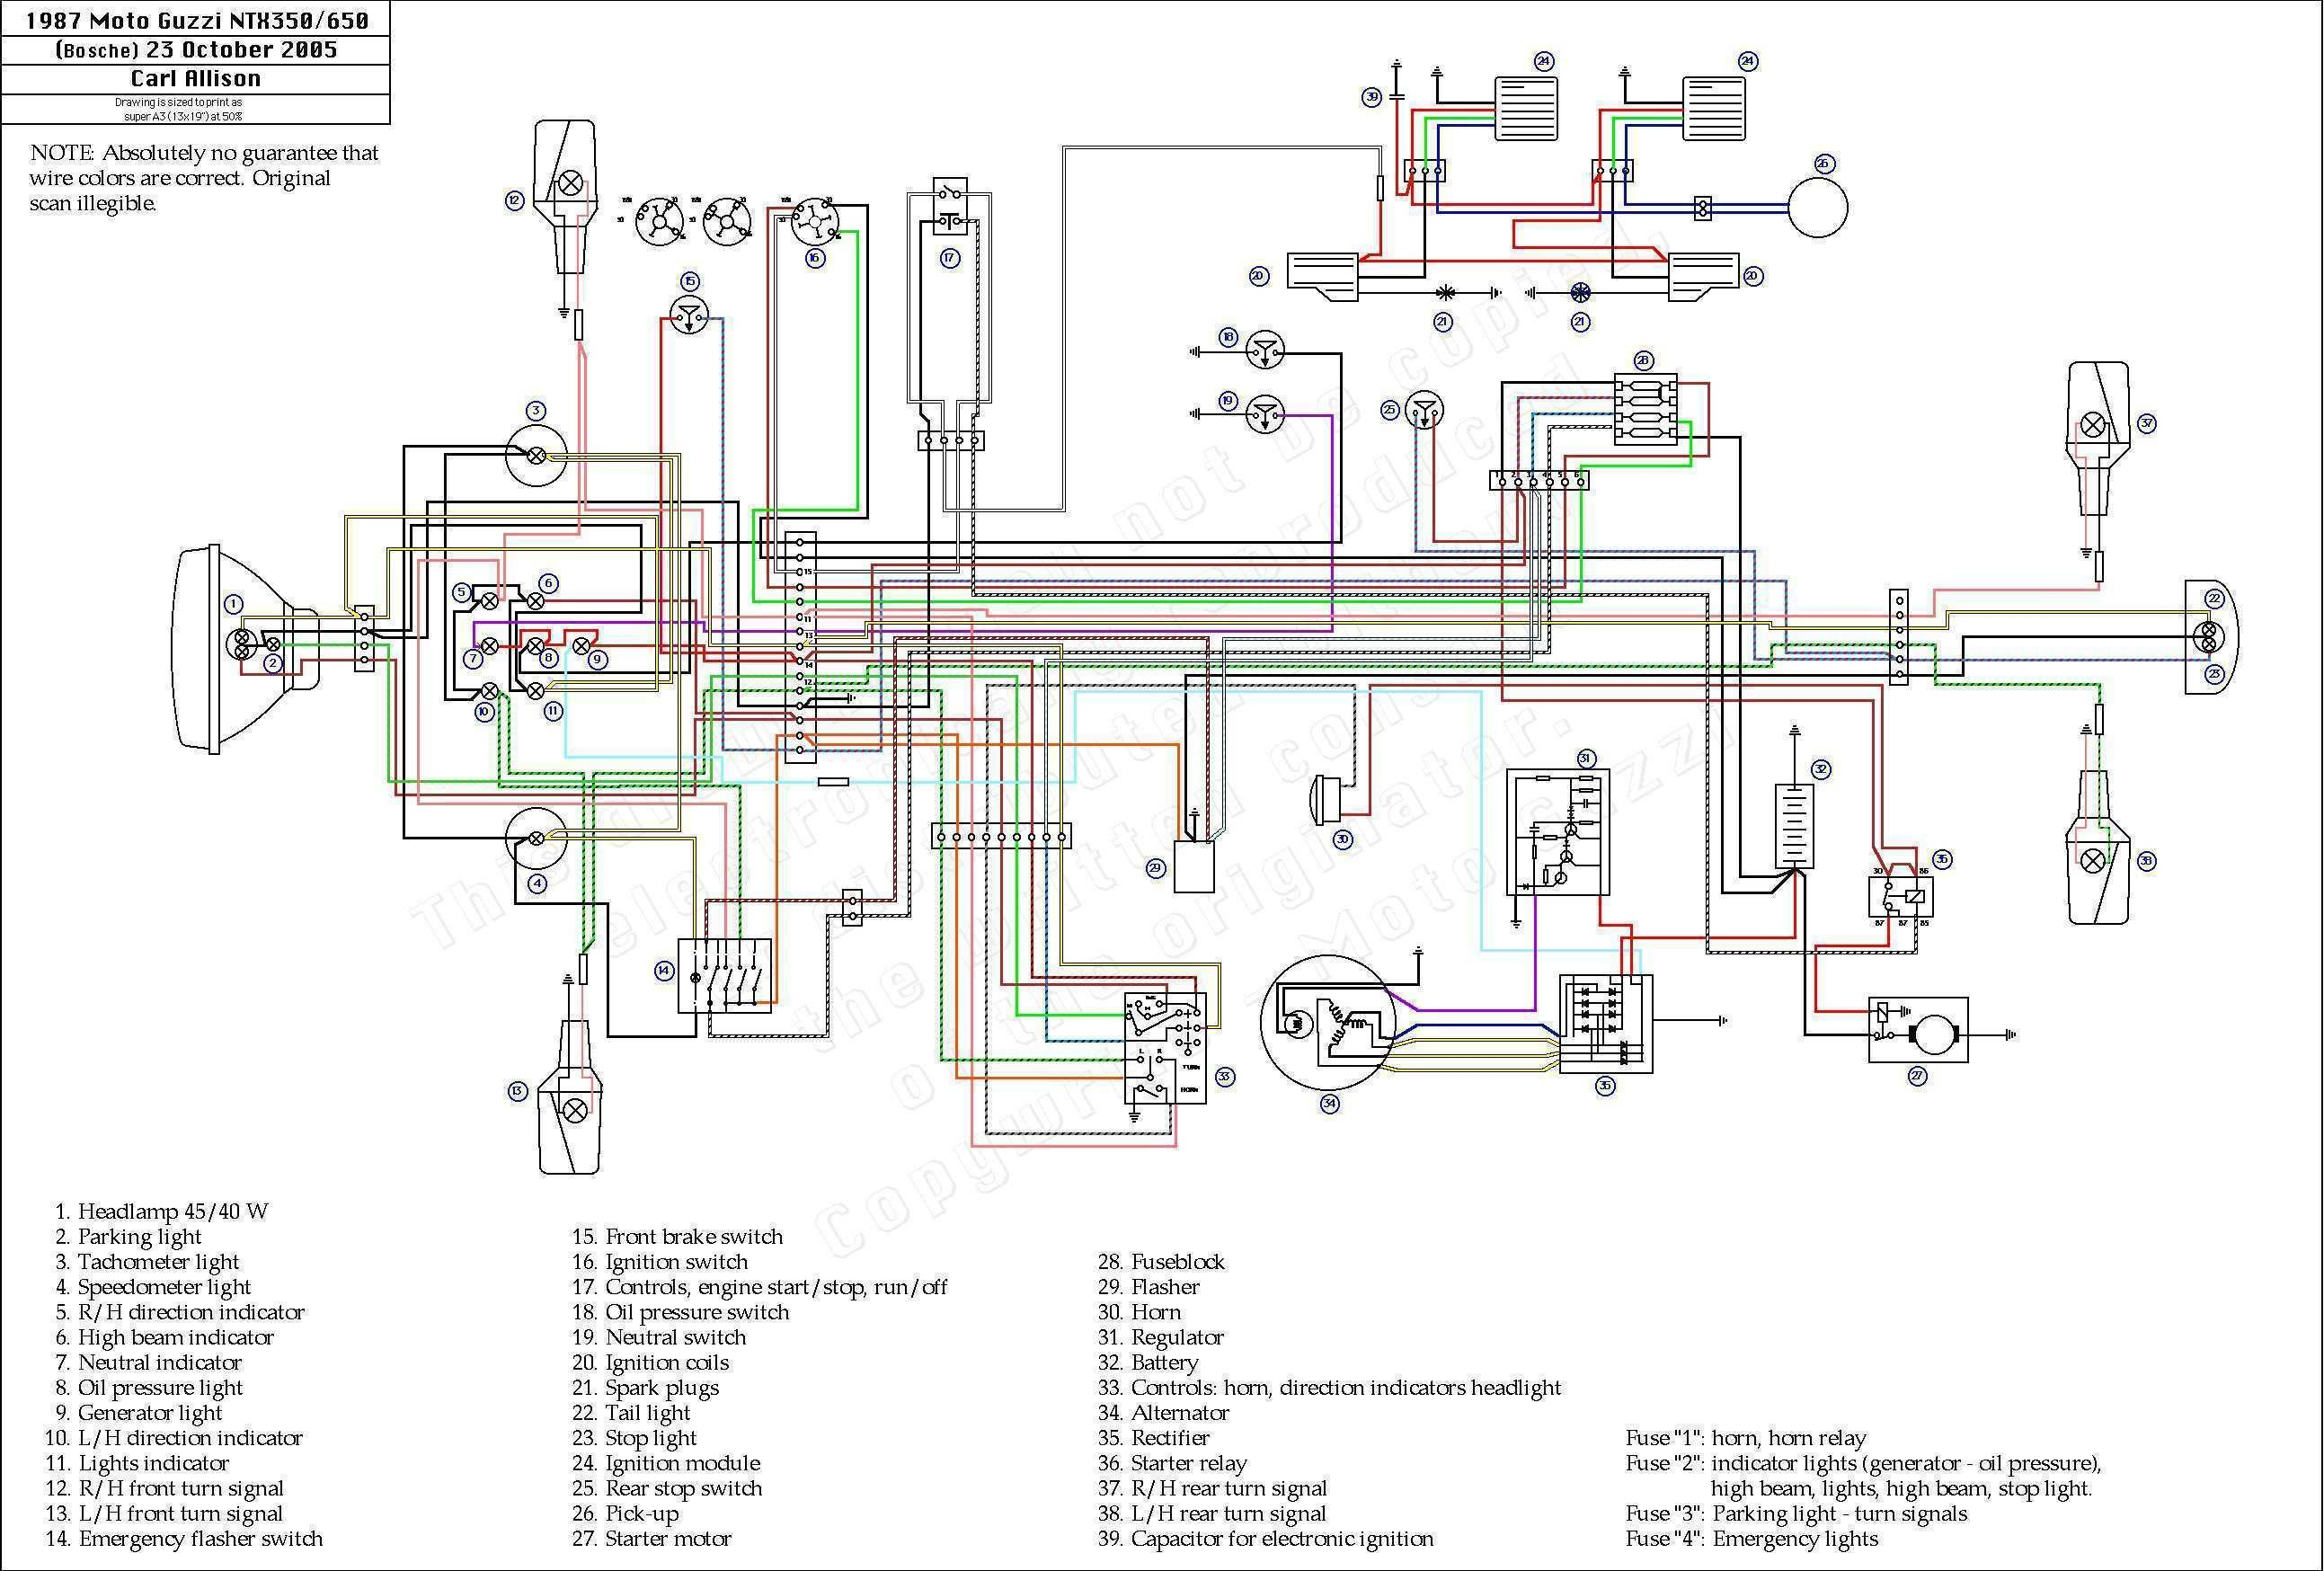 Magnificent Wiring Diagram 125 Grizzly Wiring Diagram Wiring Cloud Grayisramohammedshrineorg